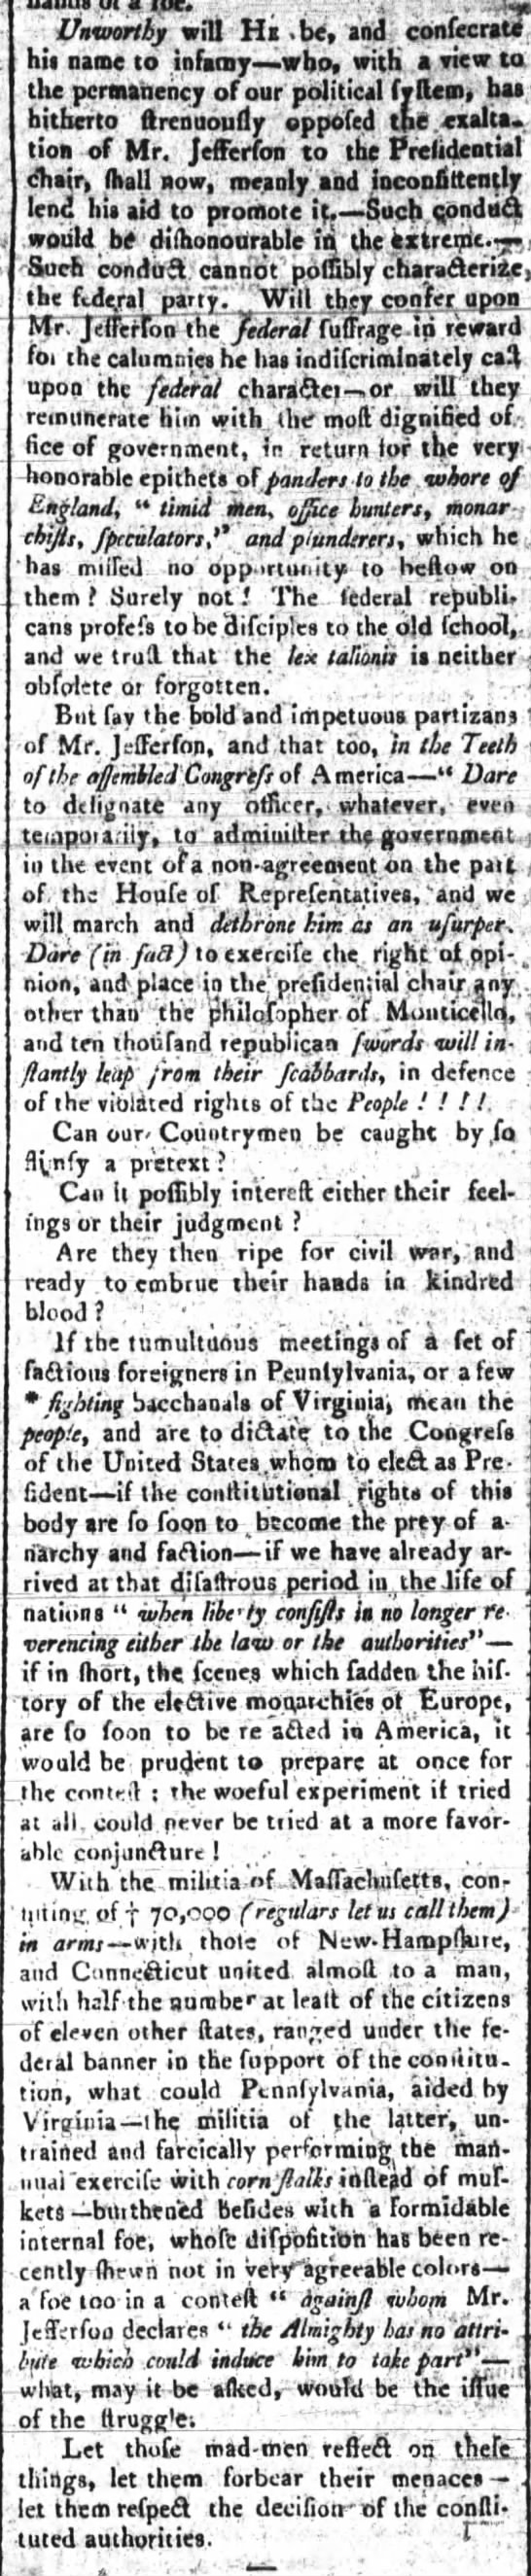 Article from a Federalist paper critical of Federalists in Congress willing to support Jefferson